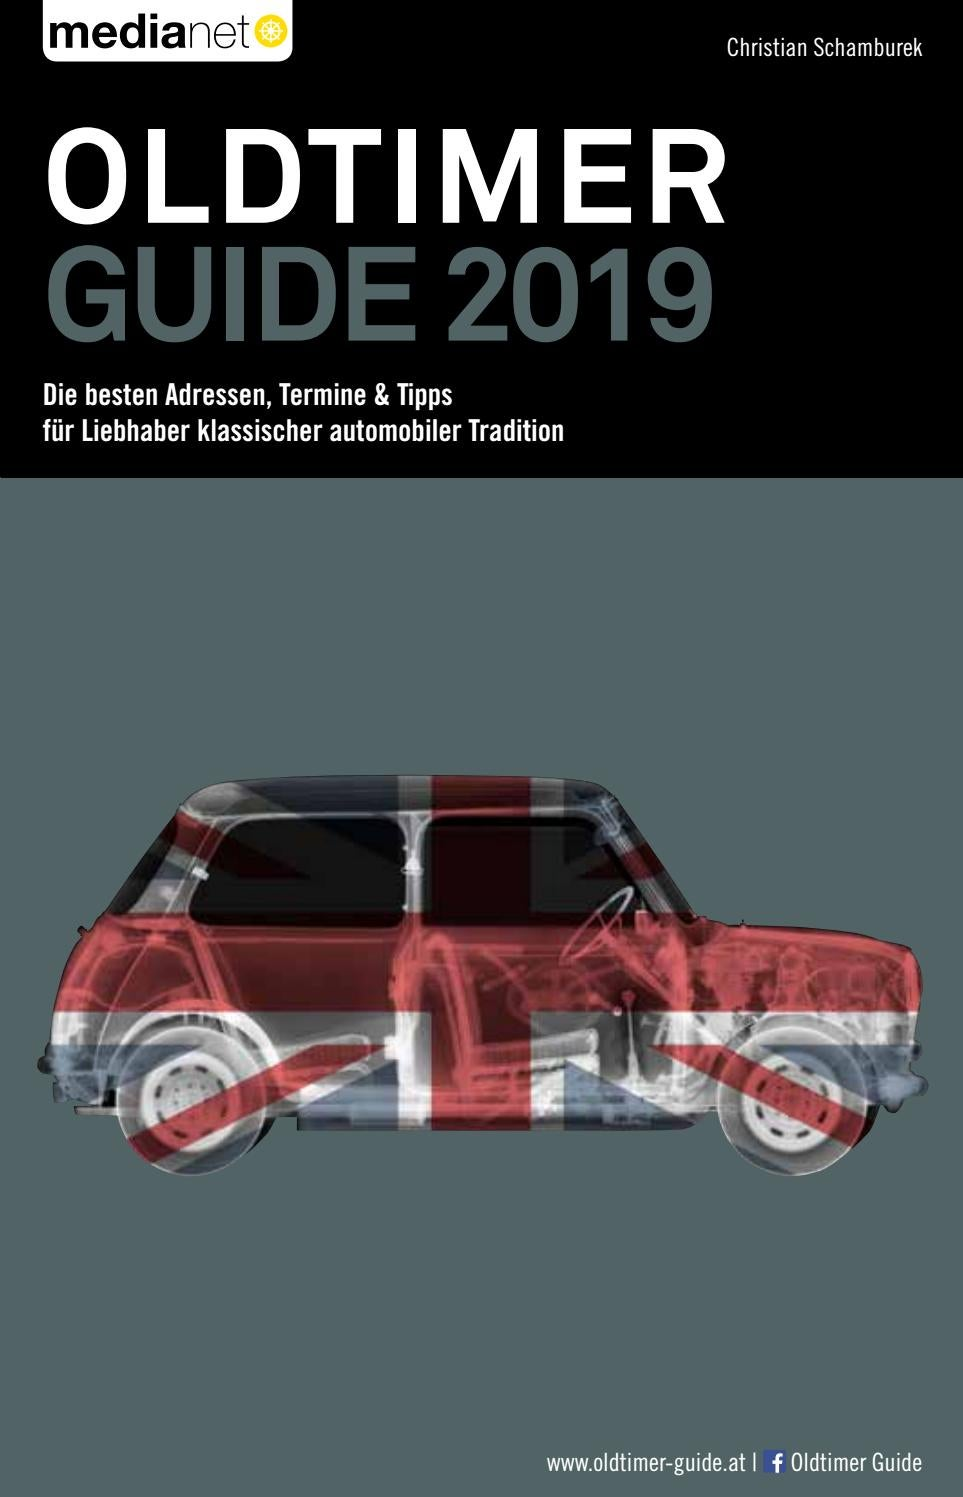 Oldtimer Guide 2020 by medianet issuu